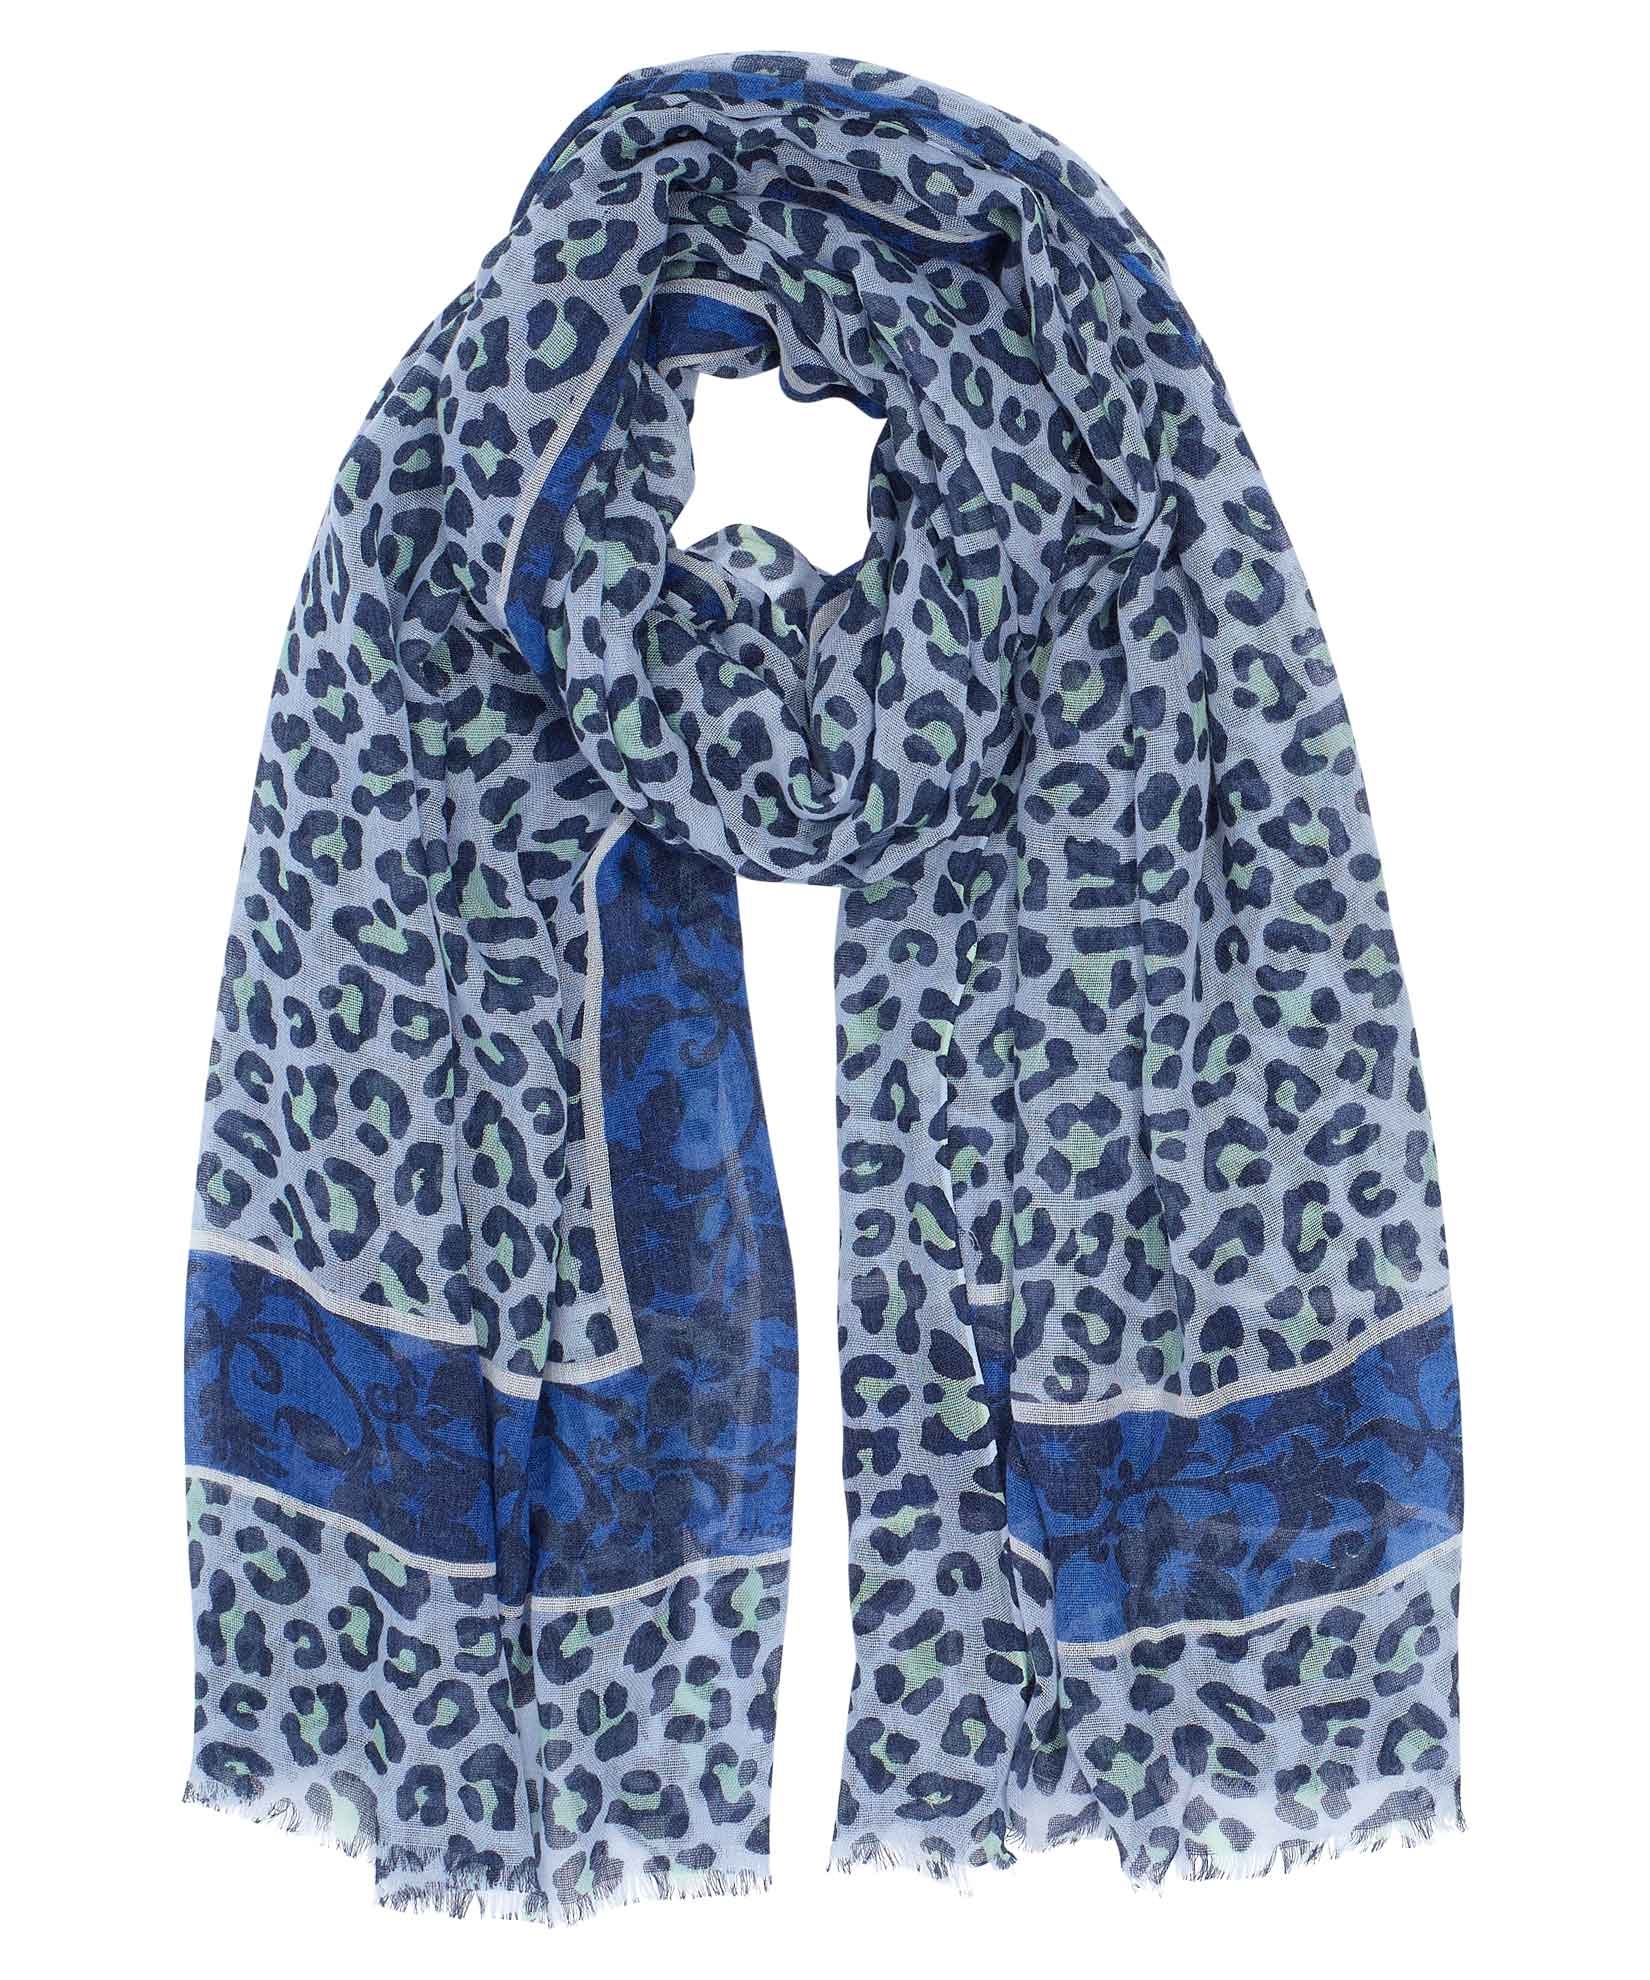 The Cheetah Frame Wrap in Blue